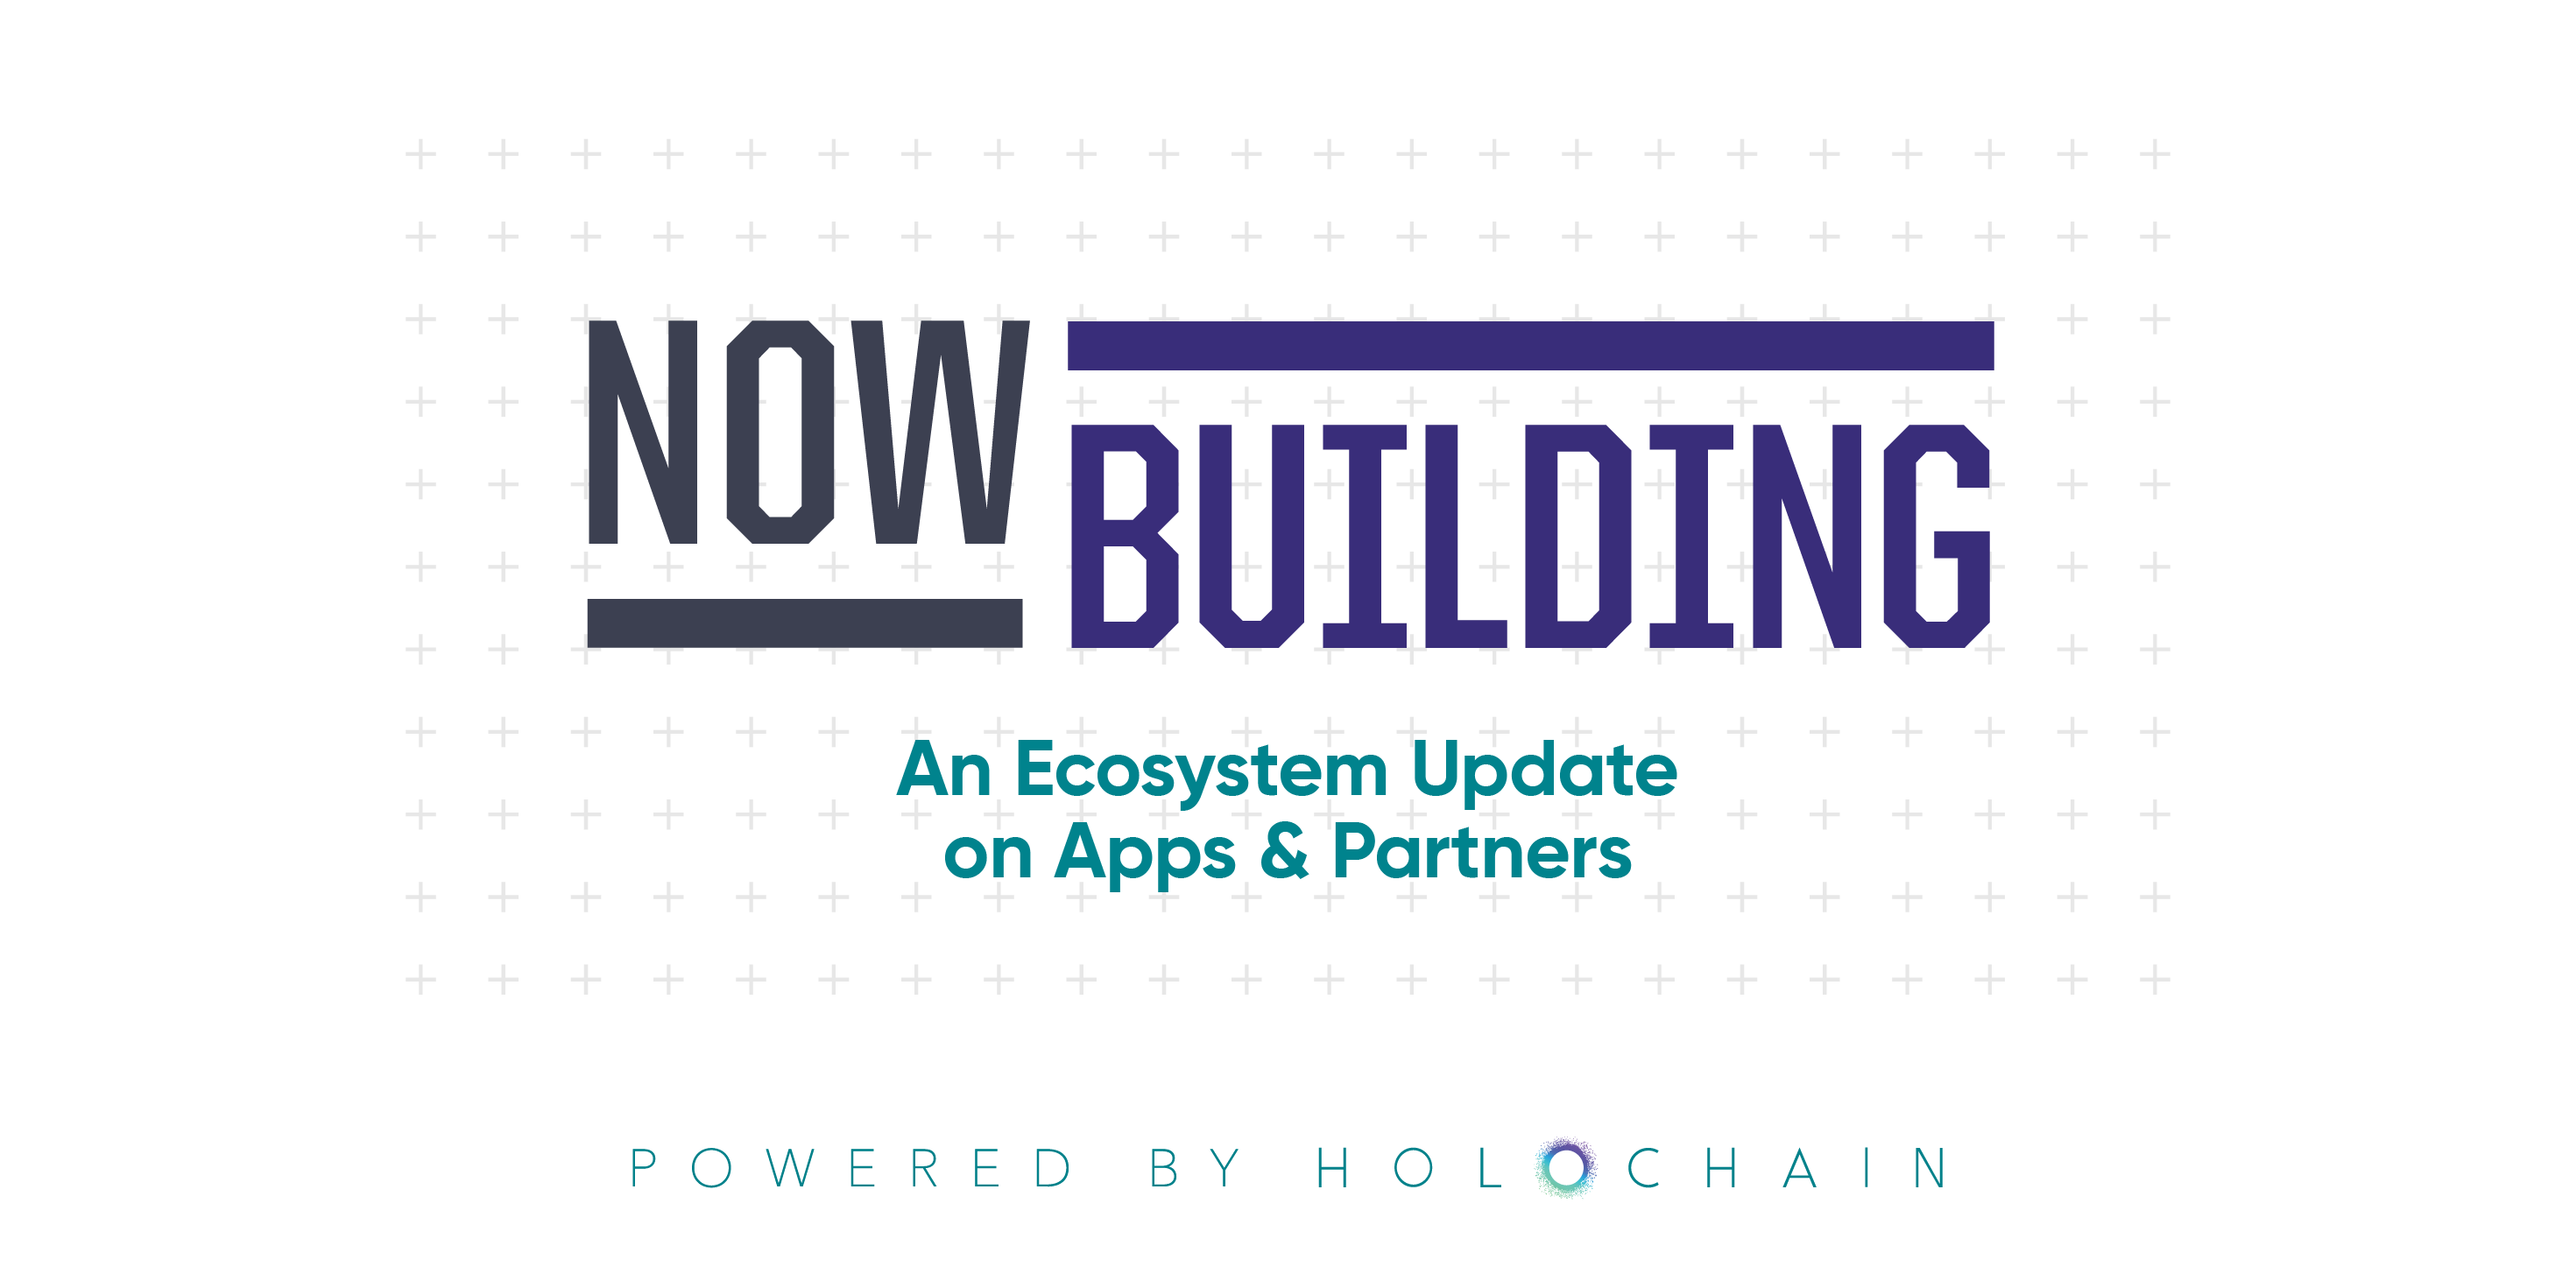 Junto: A New Breed of Social Media Powered by Holochain